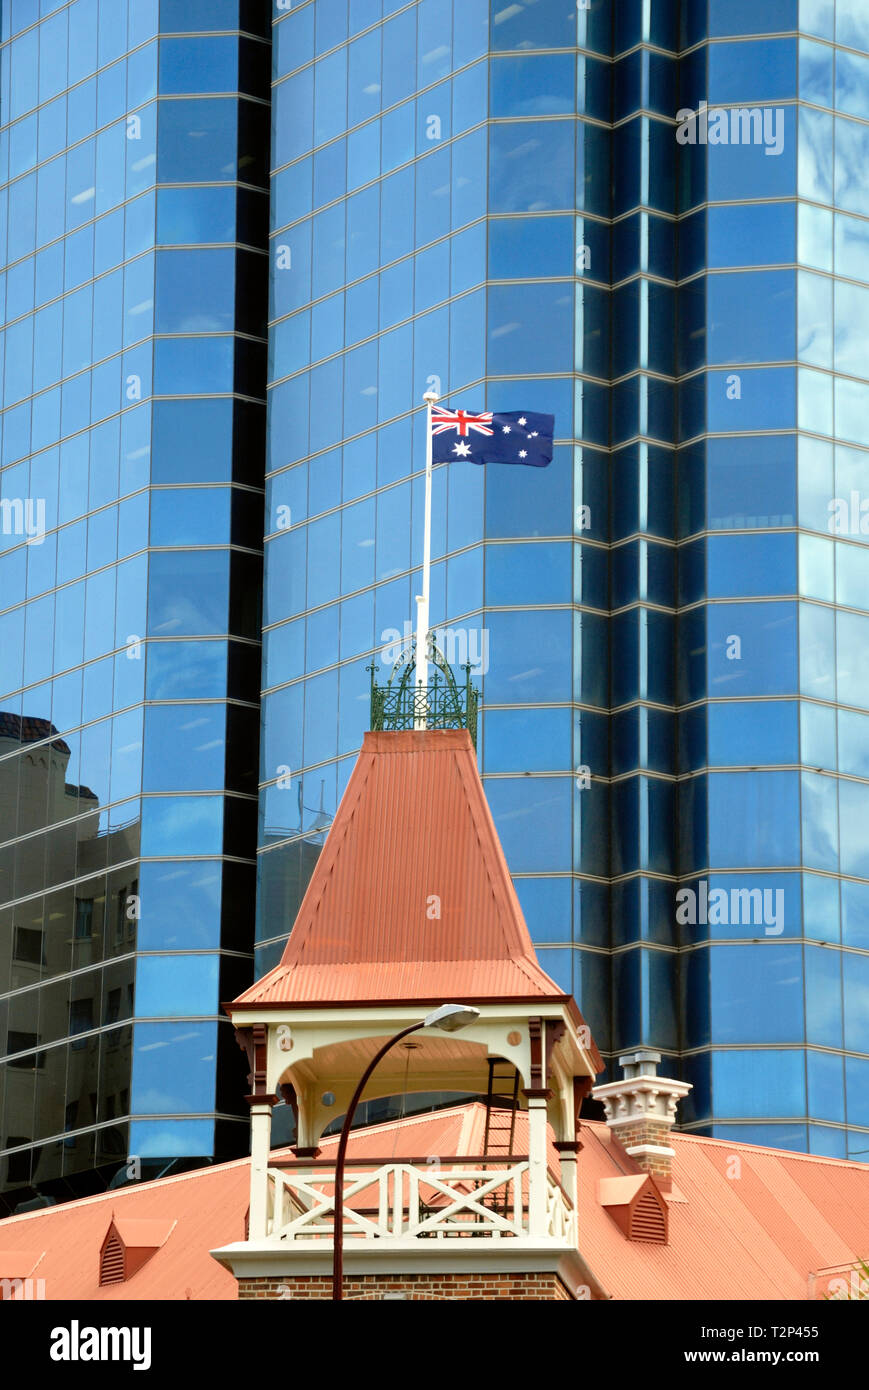 Australian flag flying on flagpole at the roof of an old fashioned building in front of an office building, Perth, Australia - Stock Image